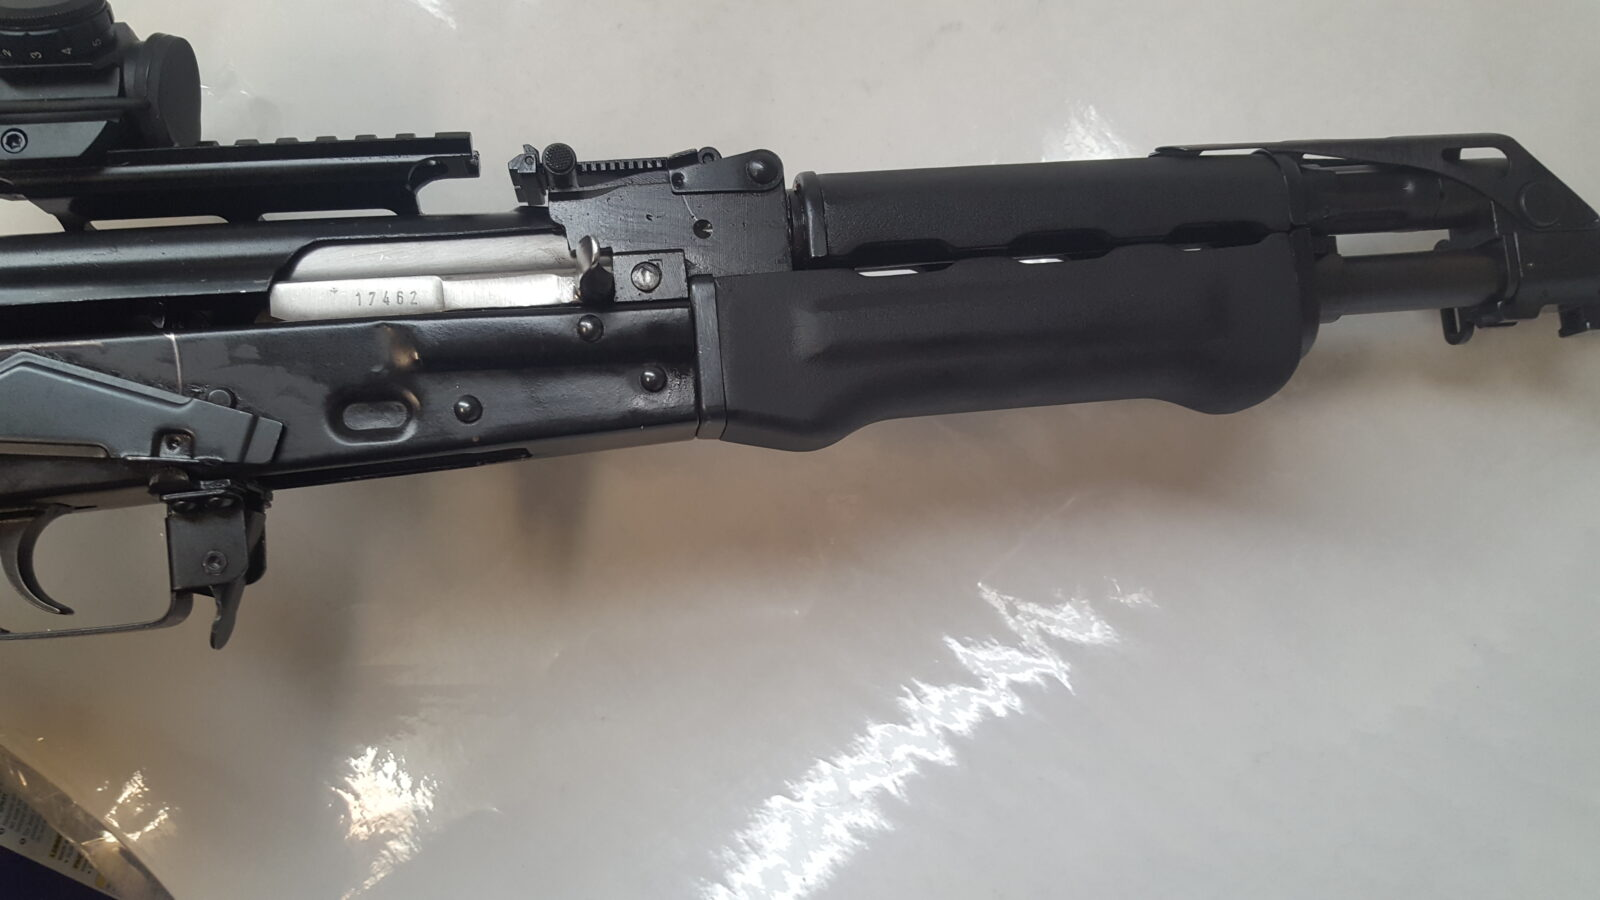 Check Out Derreck's M70B1 with our Bulged Handguards